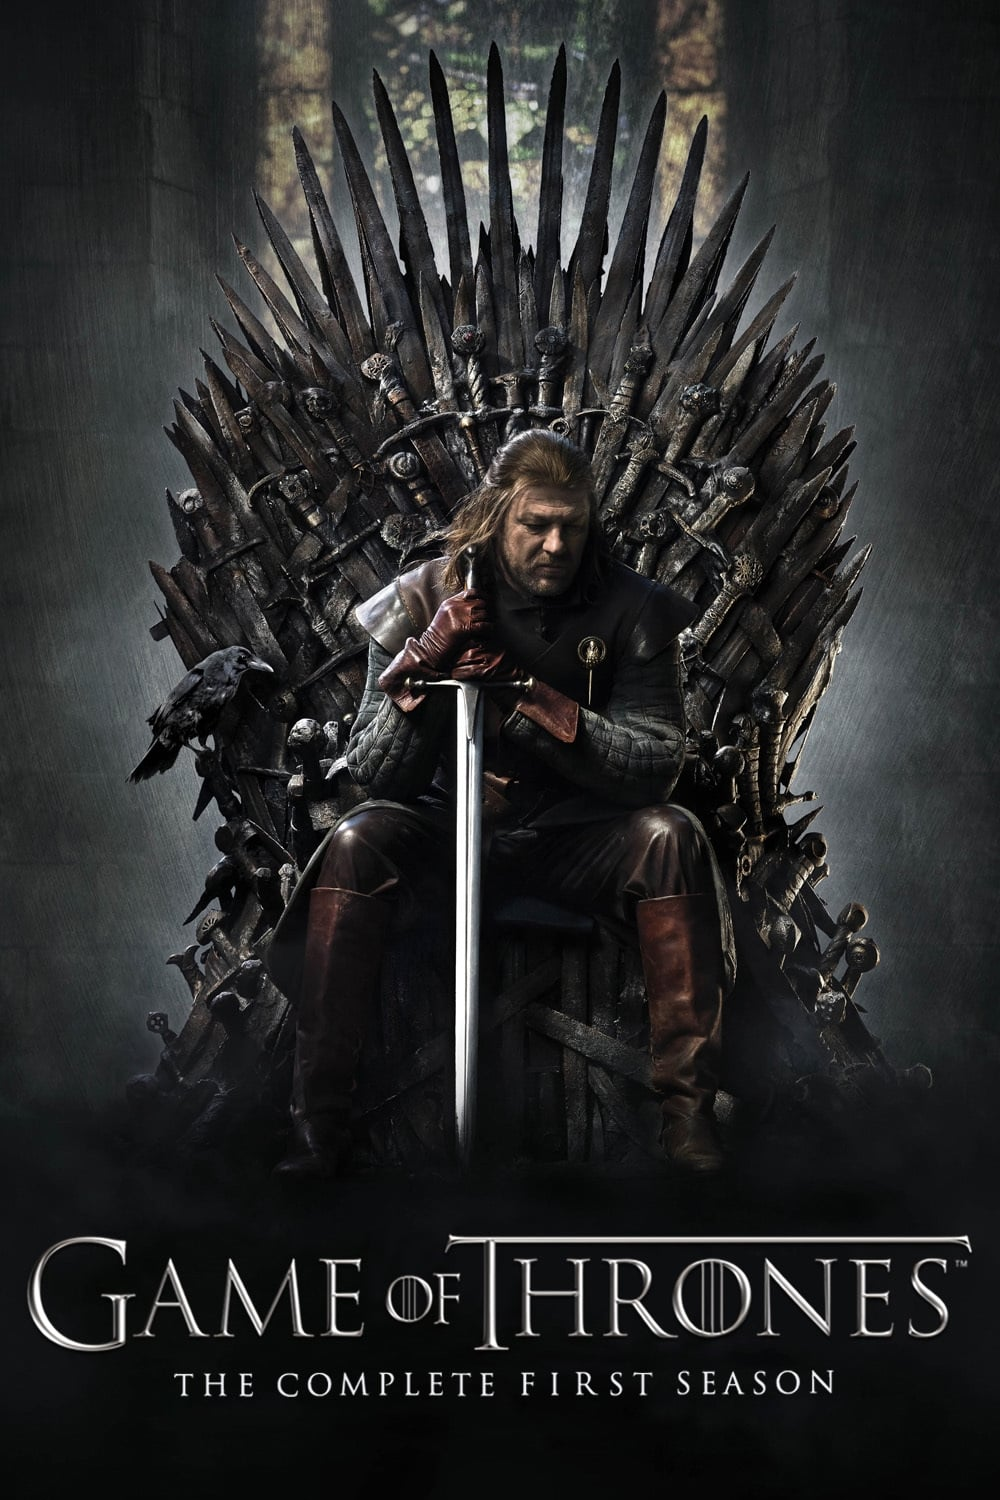 http://hugobet9.com/game-of-thrones-1a-temporada-2011-bdrip-bluray-720p-torrent-dual-audio/